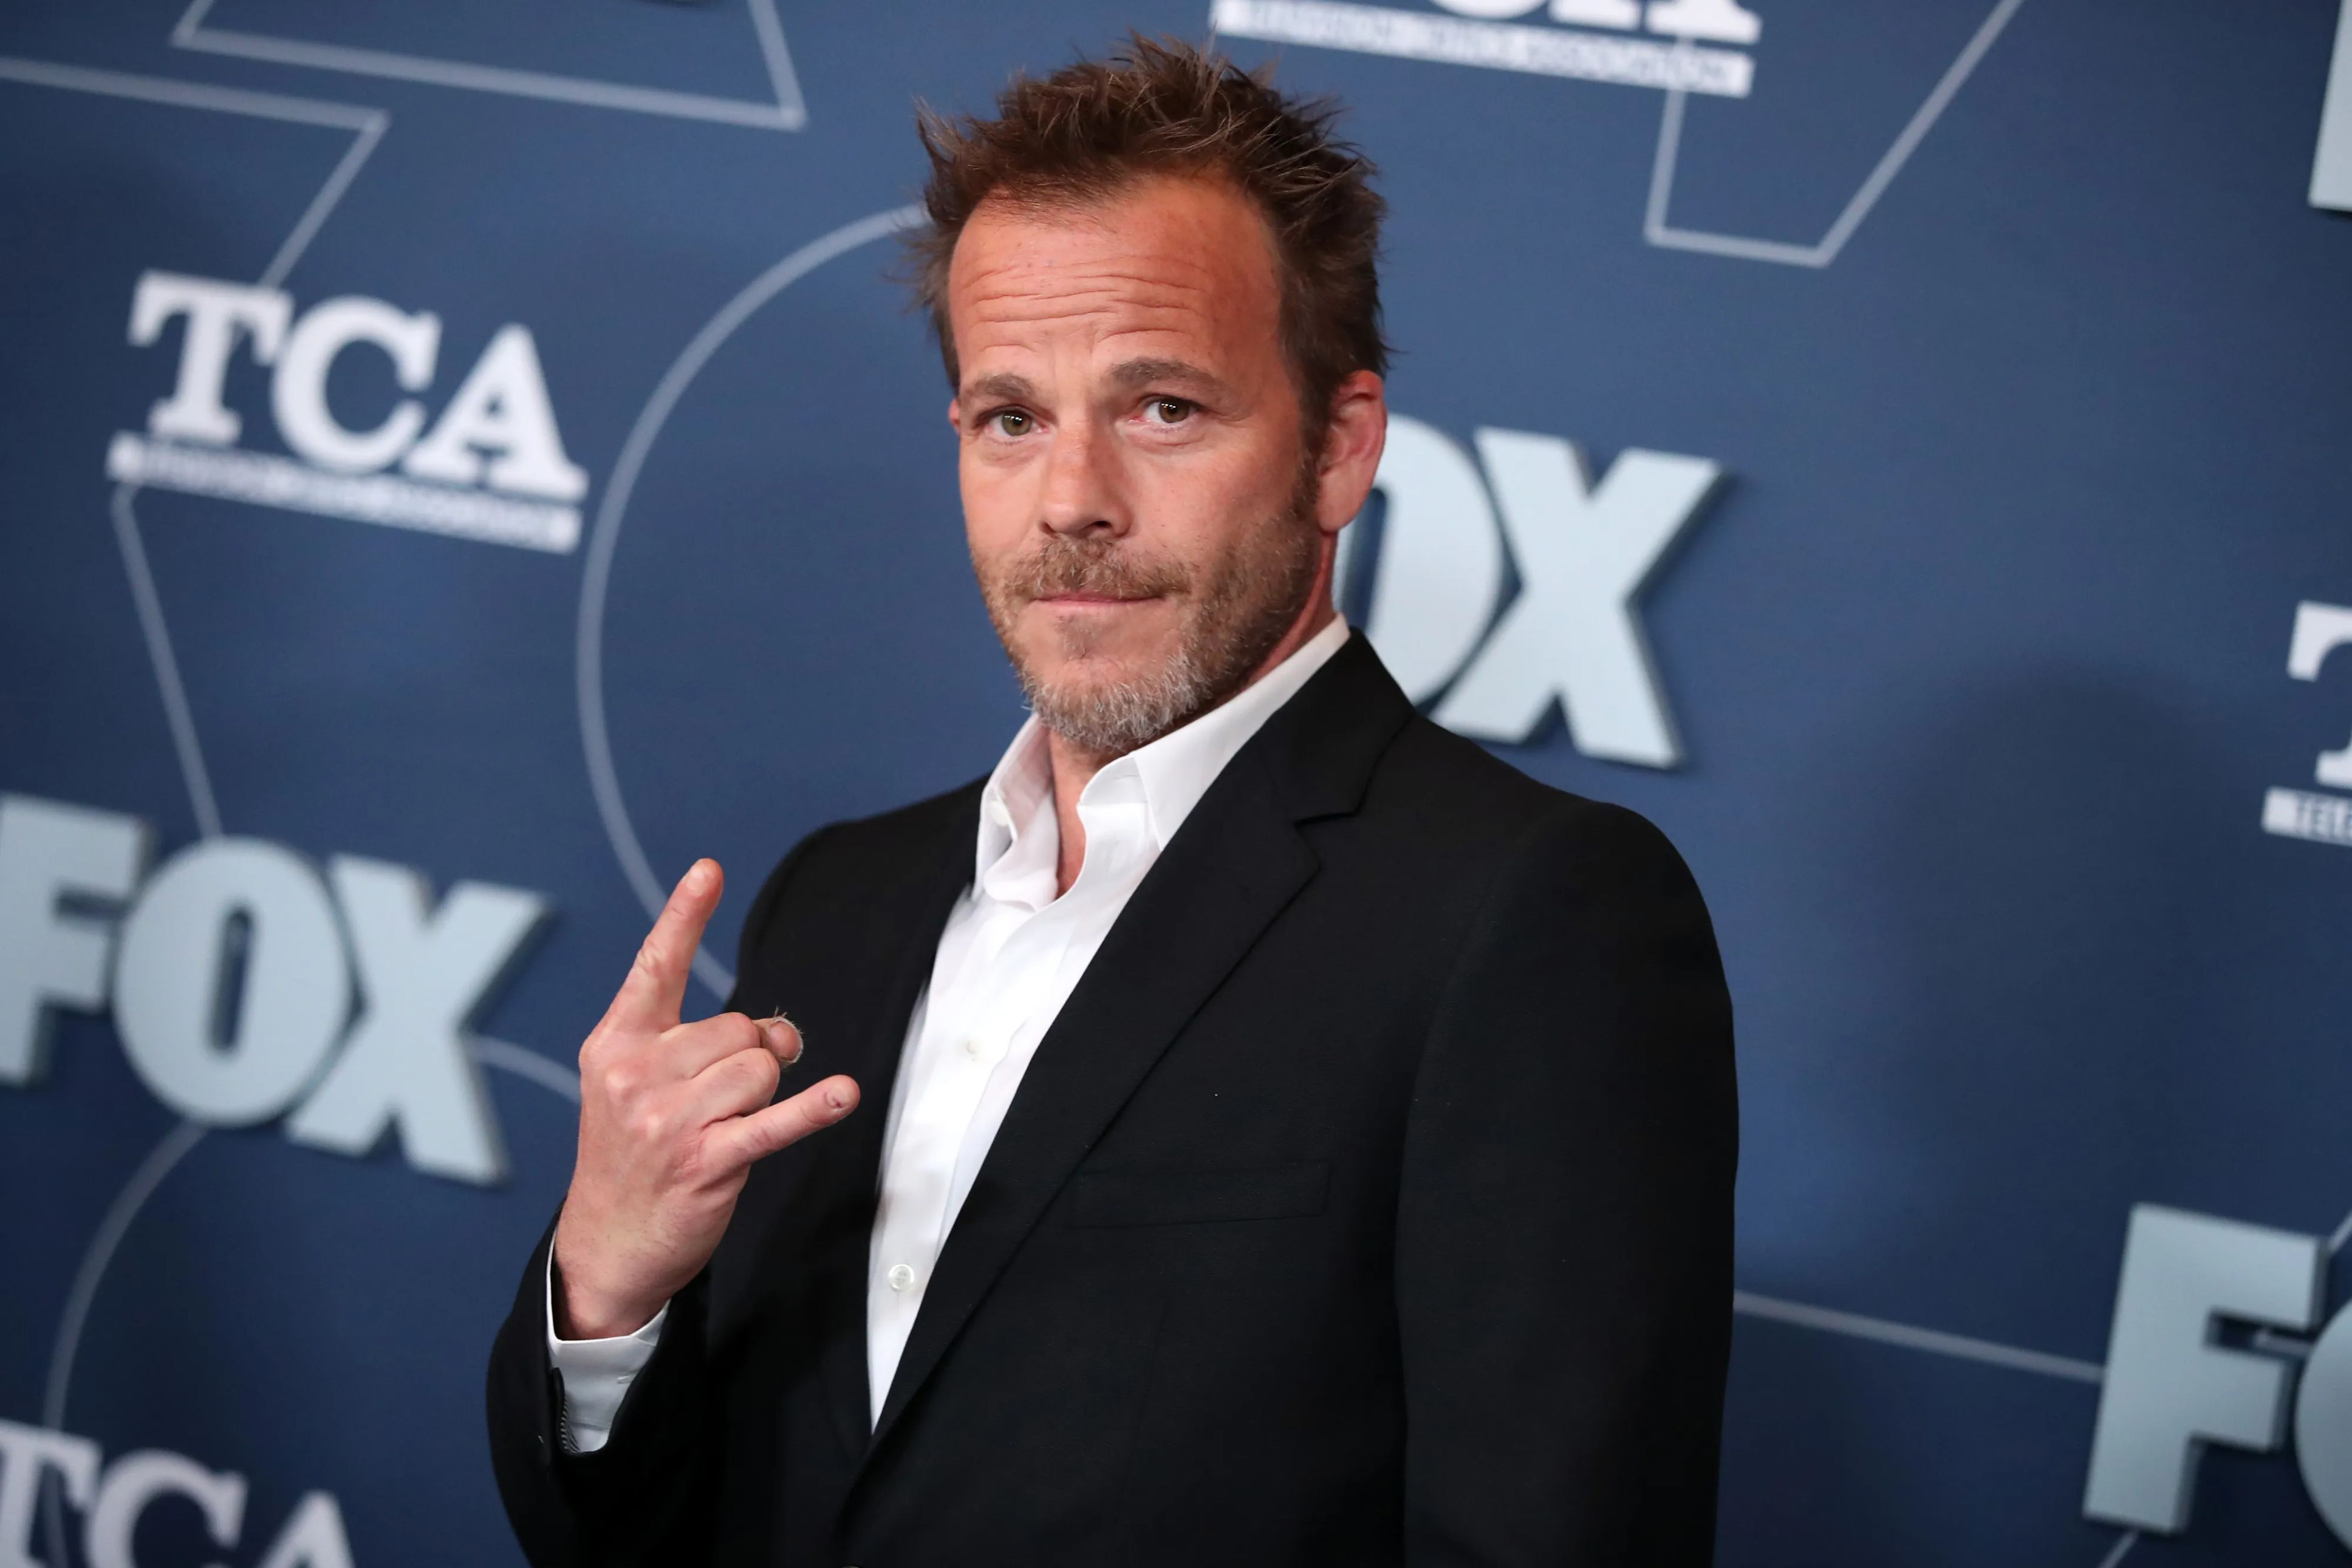 Stephen Dorff poses at an event.